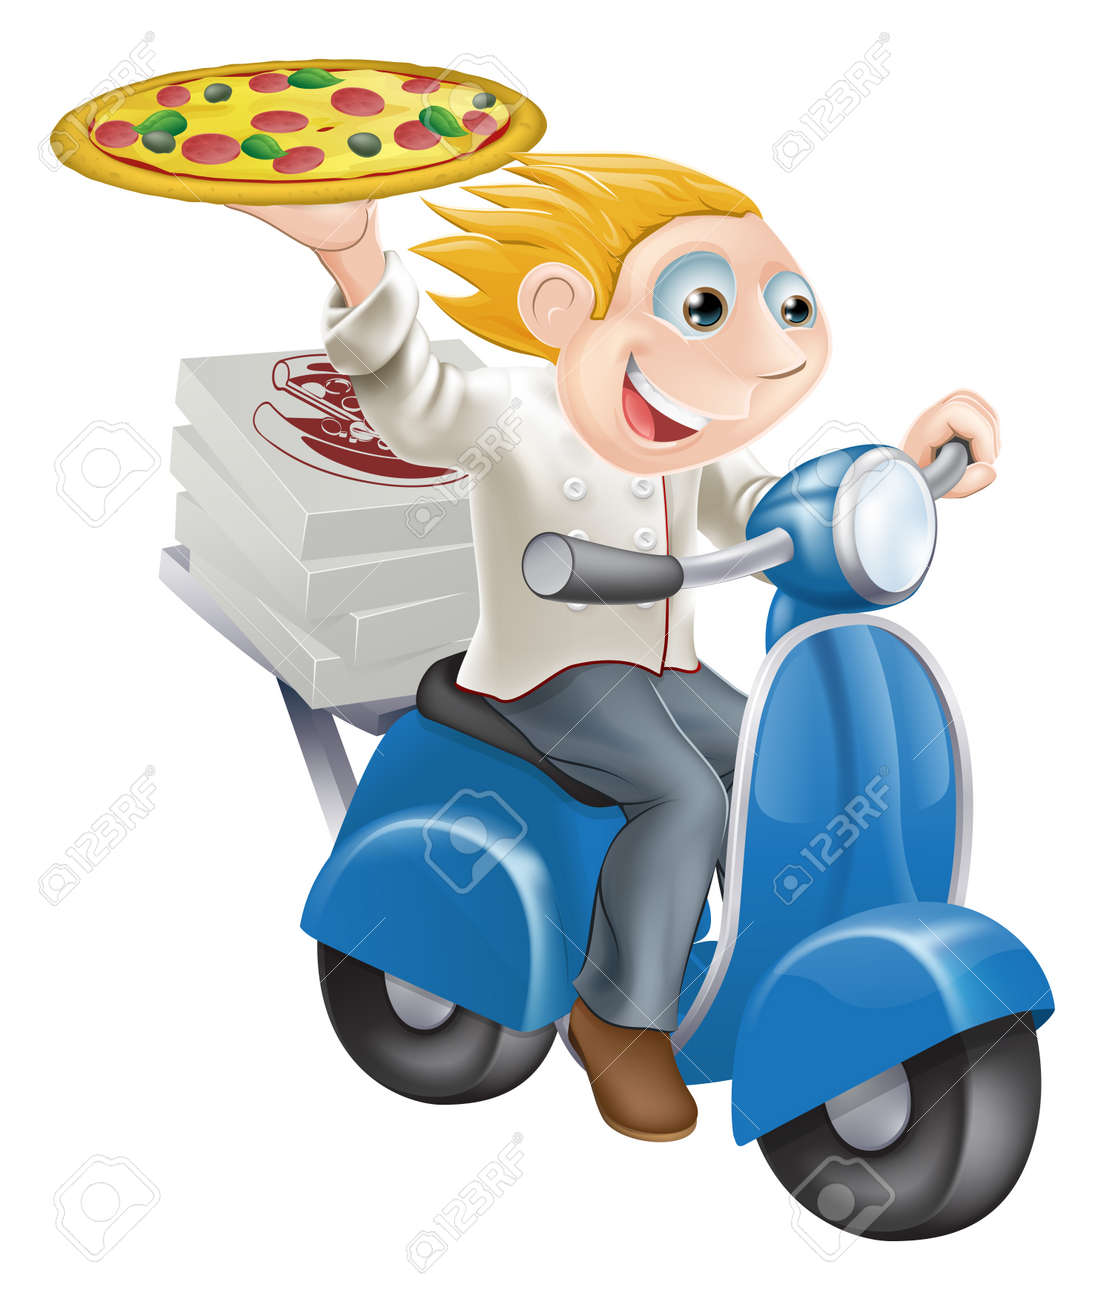 Graphic of a fast food pizza chef speeding along in his chef whites delivering pizza. Stock Vector - 15128741